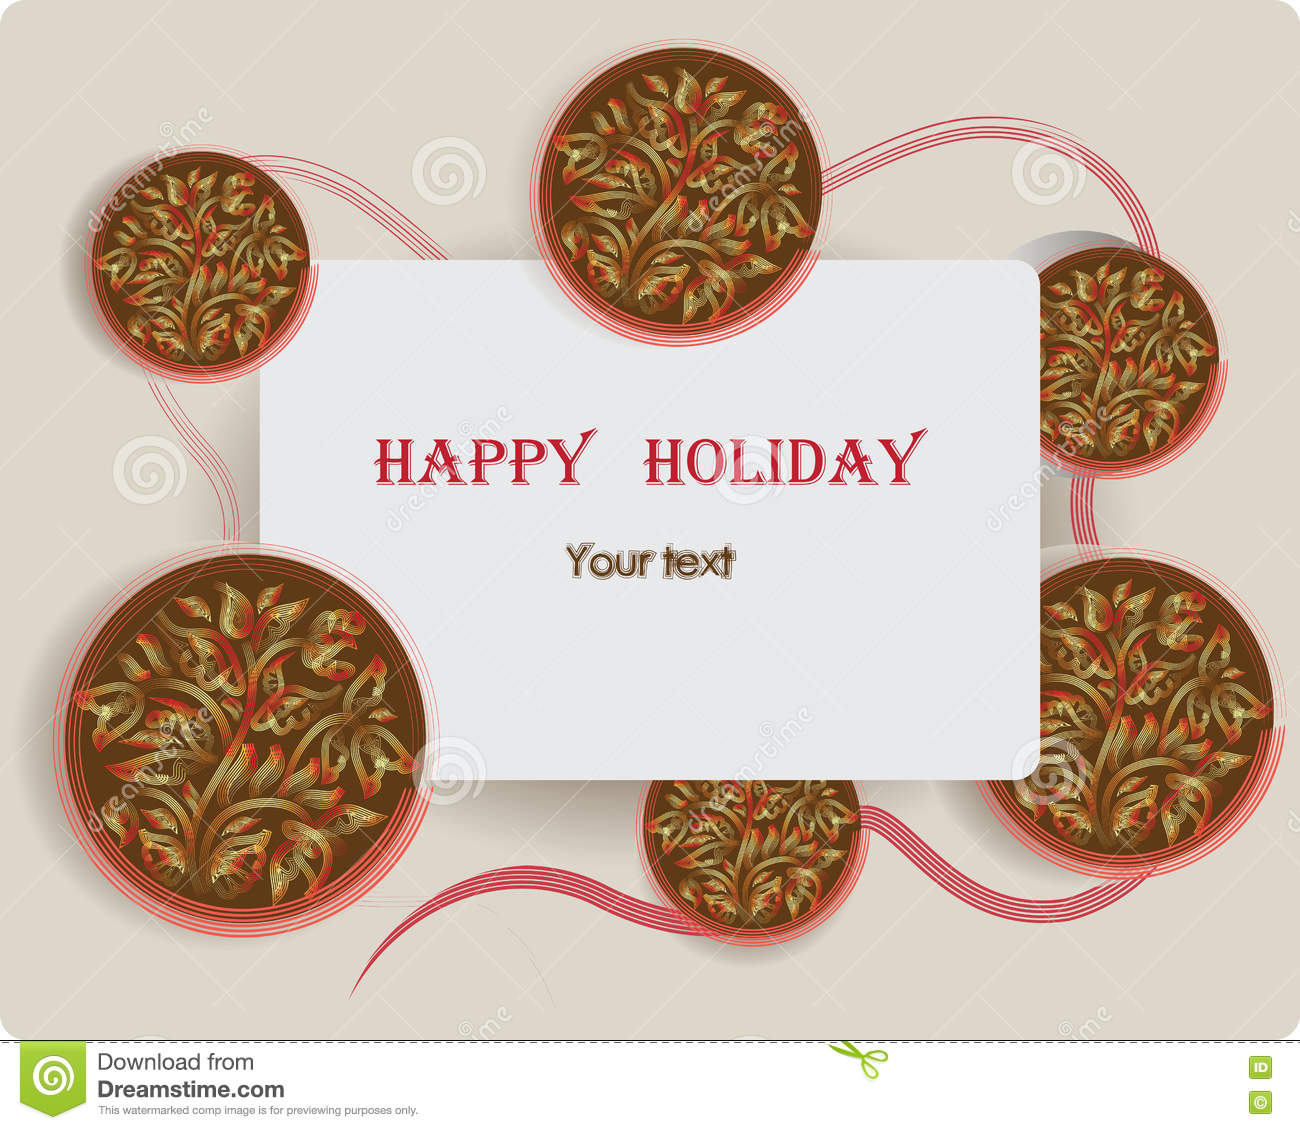 Happy holiday greeting card poster design cards for greetings greeting card poster design cards for greetings m4hsunfo